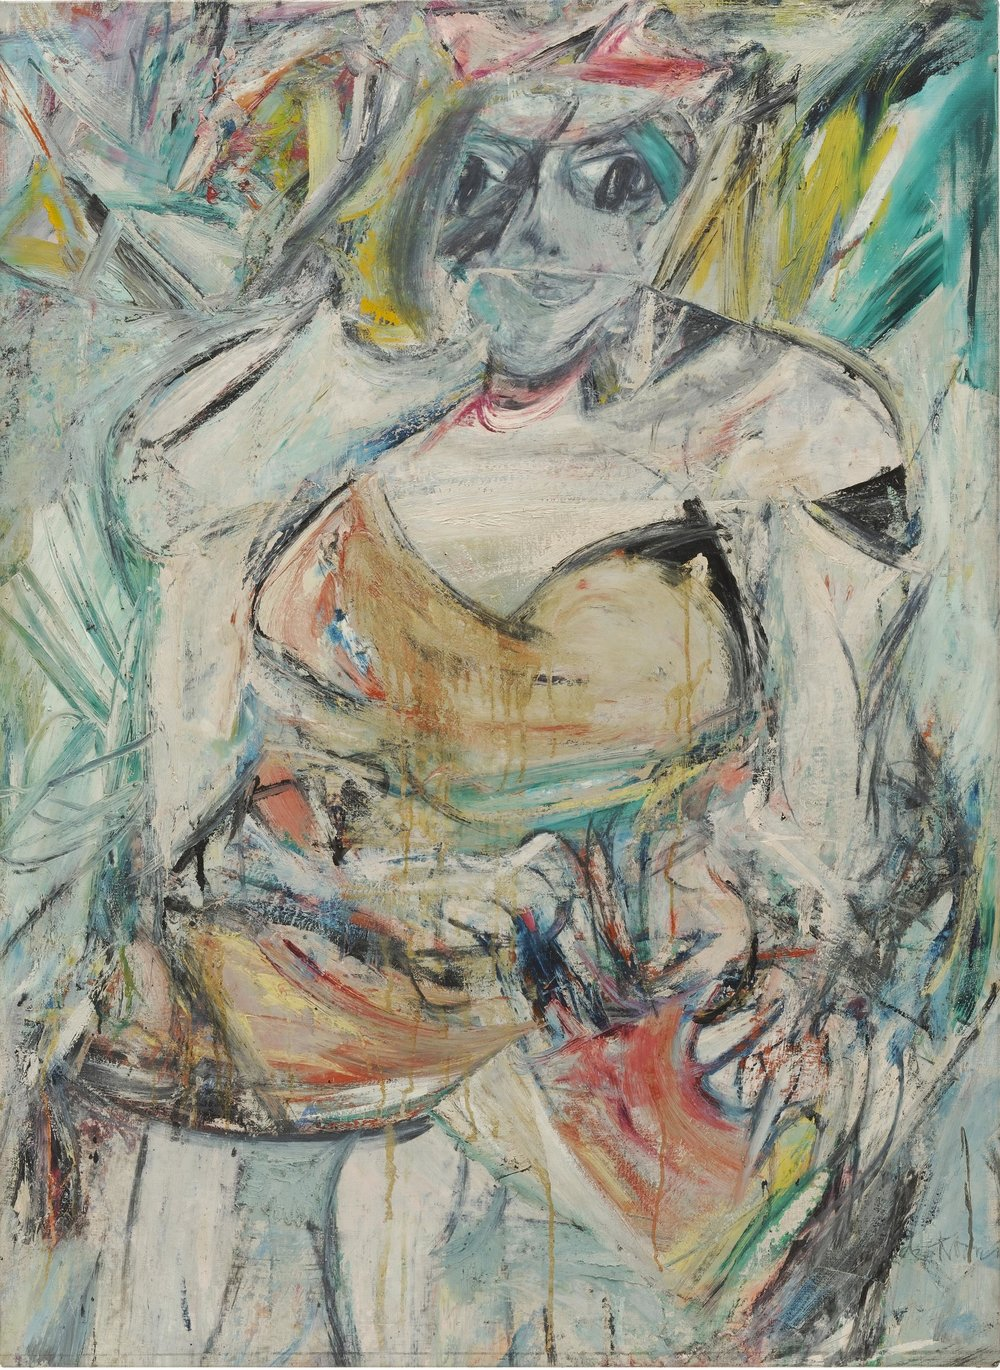 Key 183,   Willem De Kooning,    Woman II   , 1952. Oil, enamel and charcoal on canvas, 149.9 x 109.3 cm.   The Museum of Modern Art, New York.